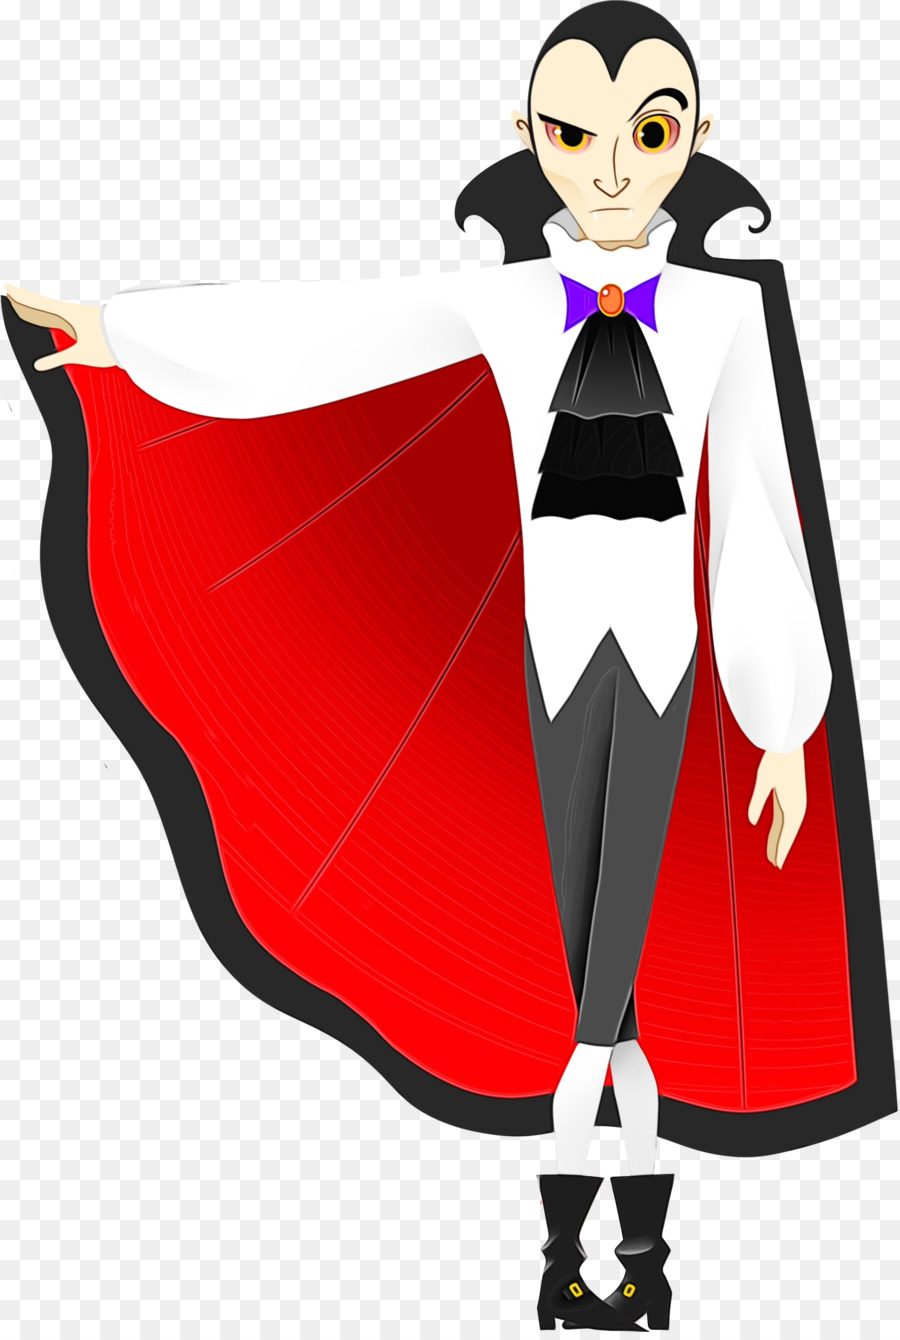 Animated dracula clipart clipart royalty free download Fish Cartoon png download - 1674*2478 - Free Transparent Dracula png ... clipart royalty free download